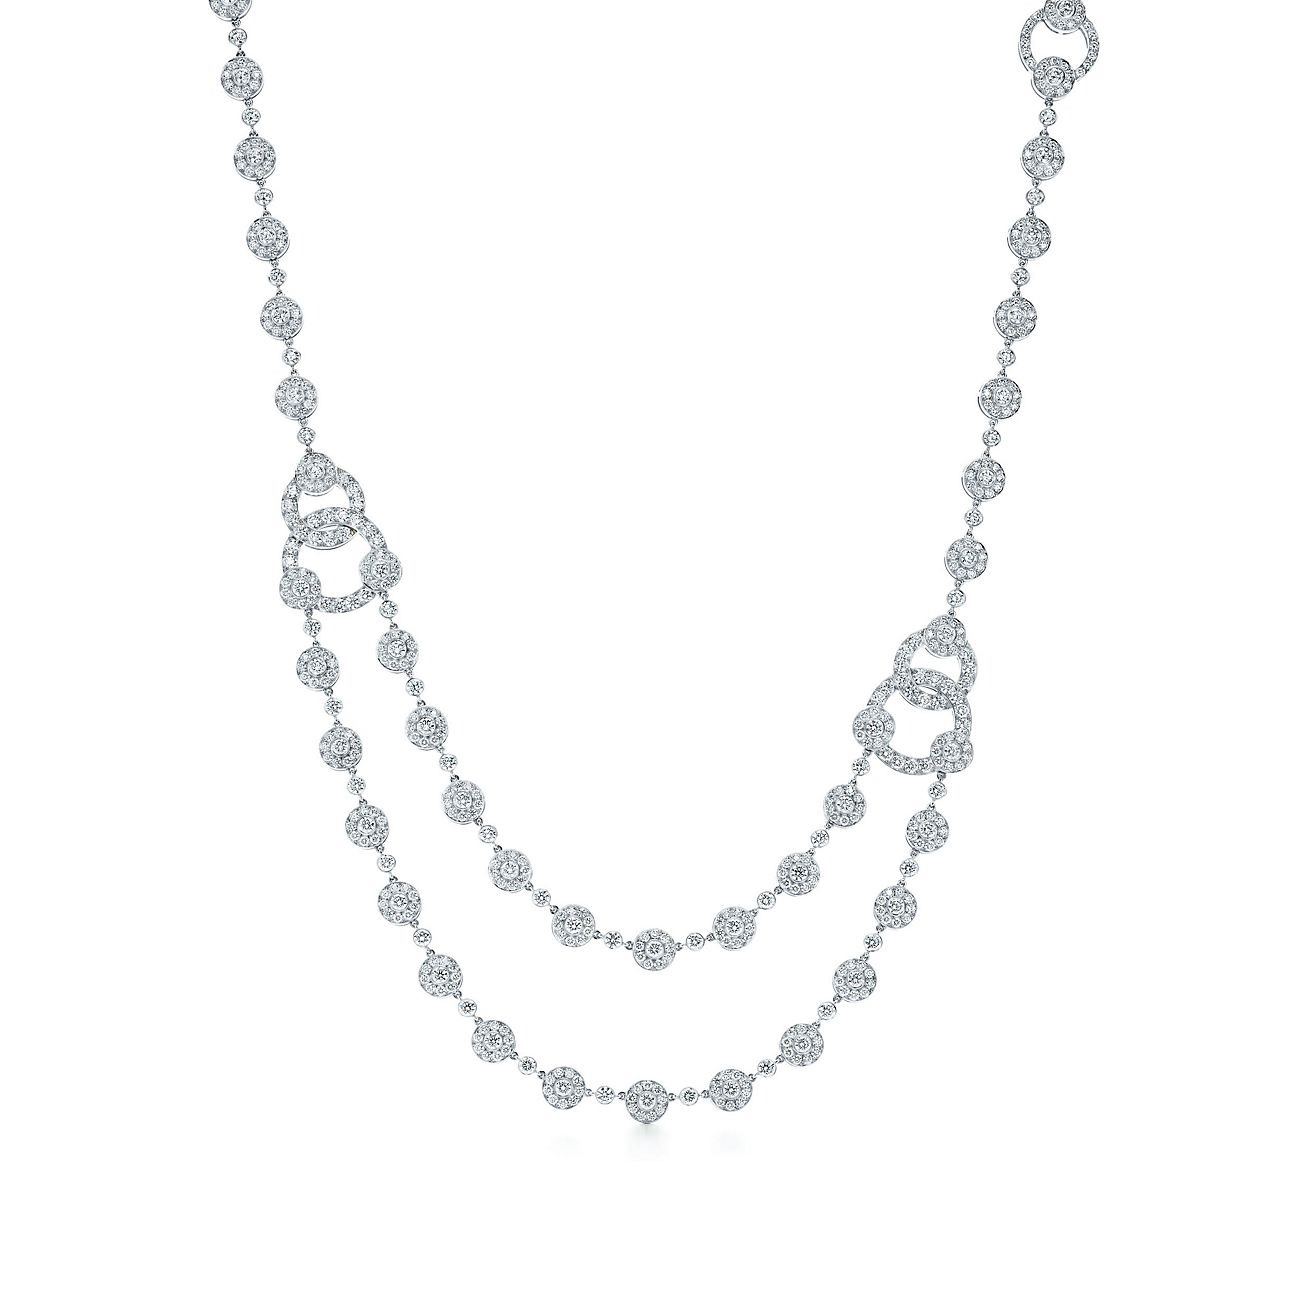 Tiffany Circlet diamond necklace in platinum.  74b51f19dc8a